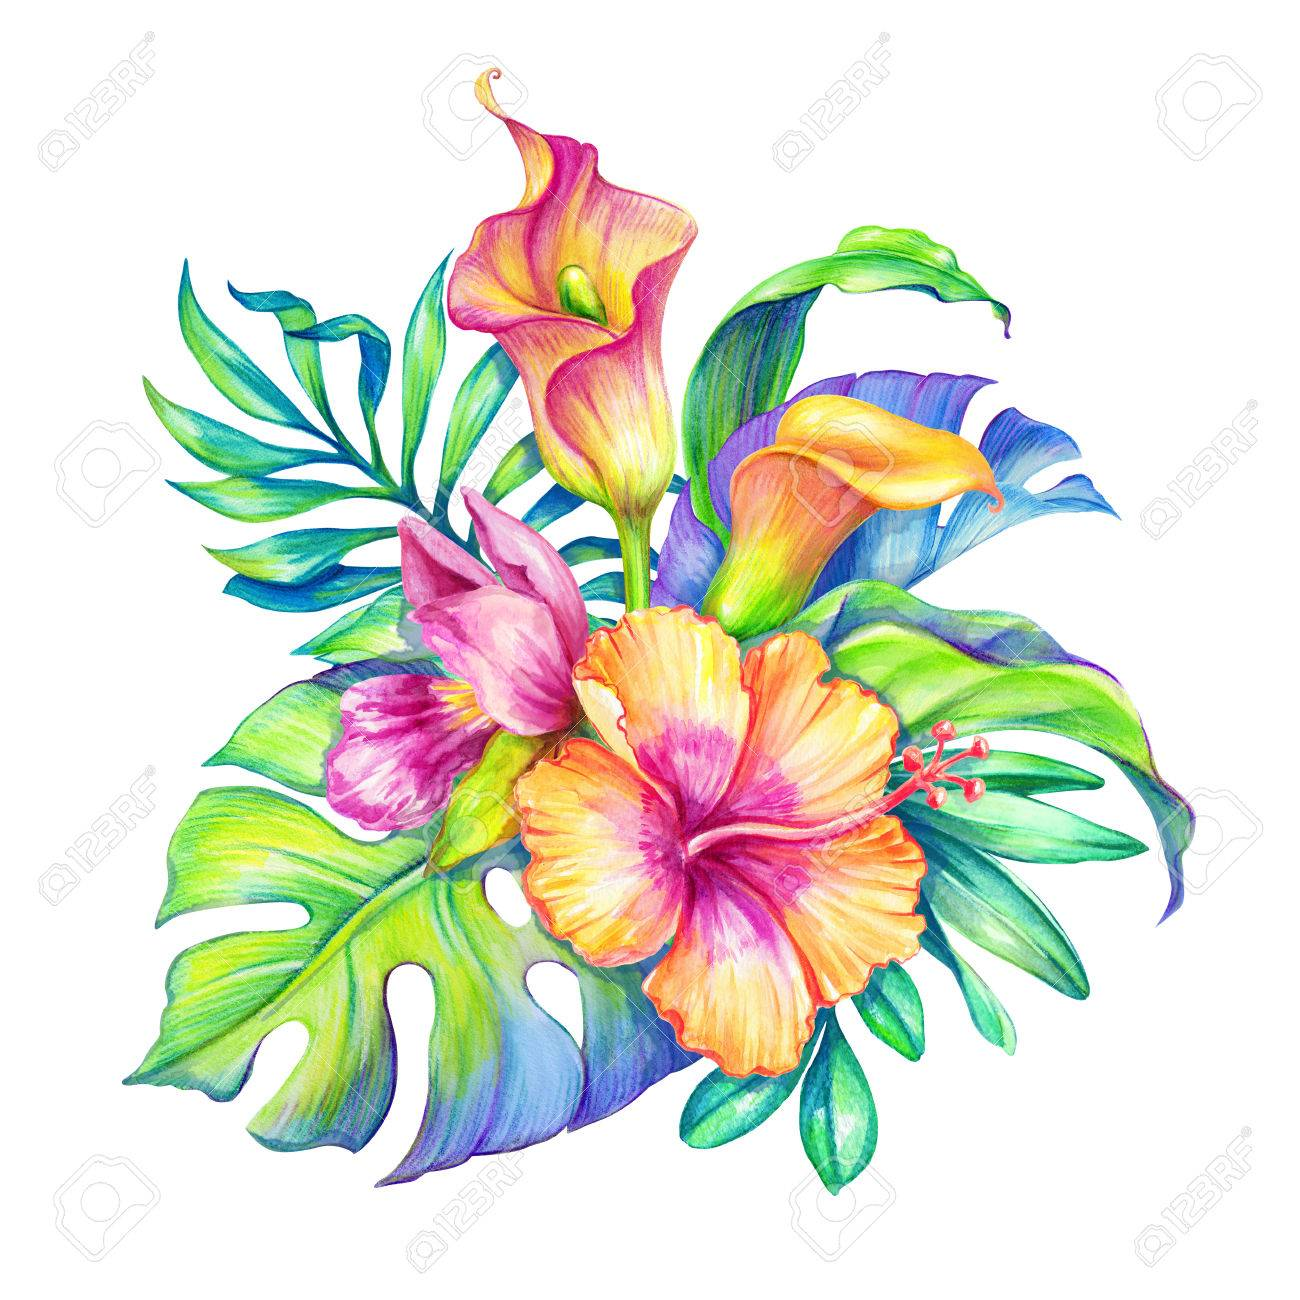 Watercolor floral illustration exotic nature tropical flowers illustration watercolor floral illustration exotic nature tropical flowers bouquet orchid hibiscus cala lily green palm leaves isolated on white izmirmasajfo